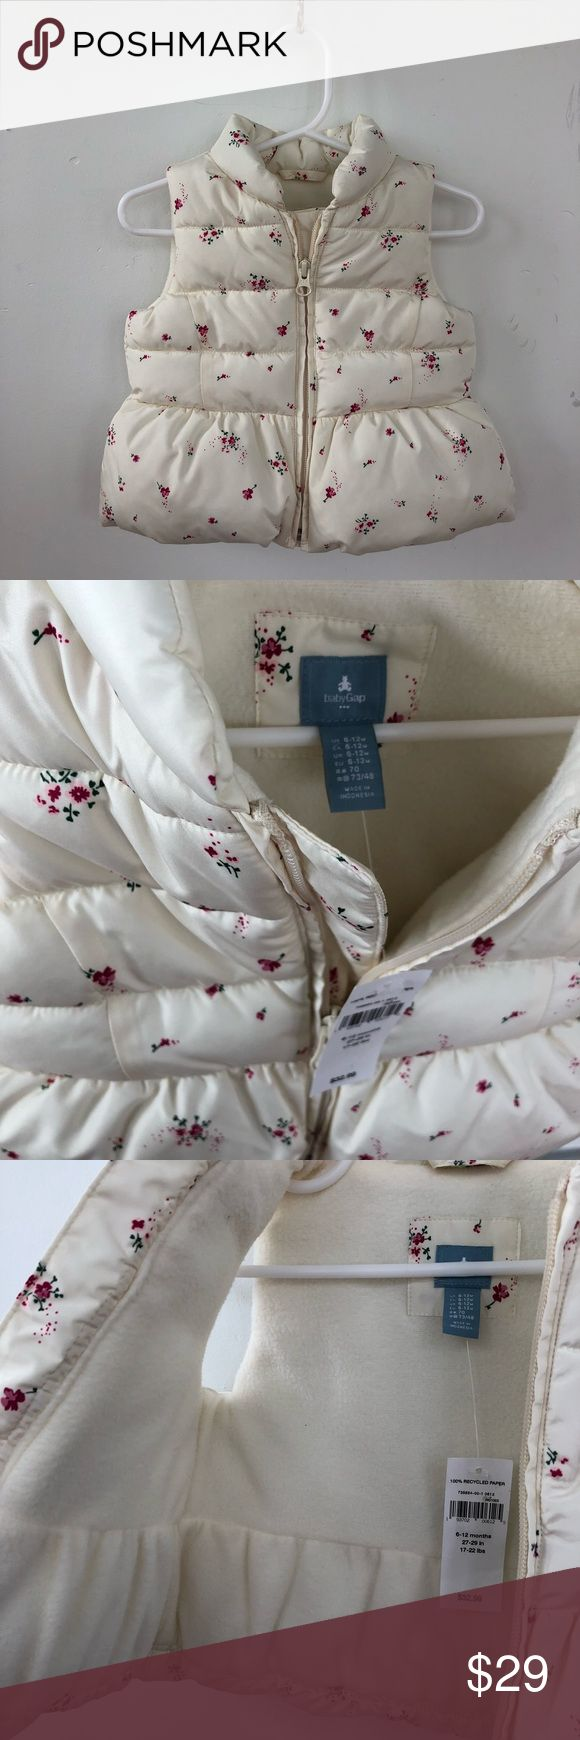 👆NWT- babyGap warmest floral quilted vest Super adorable quilted puffer vest for baby. New with tags. Size is 6-12M. Color is ivory/ off white with pink floral pattern. From Gap factory Outlet store. GAP Jackets & Coats Vests